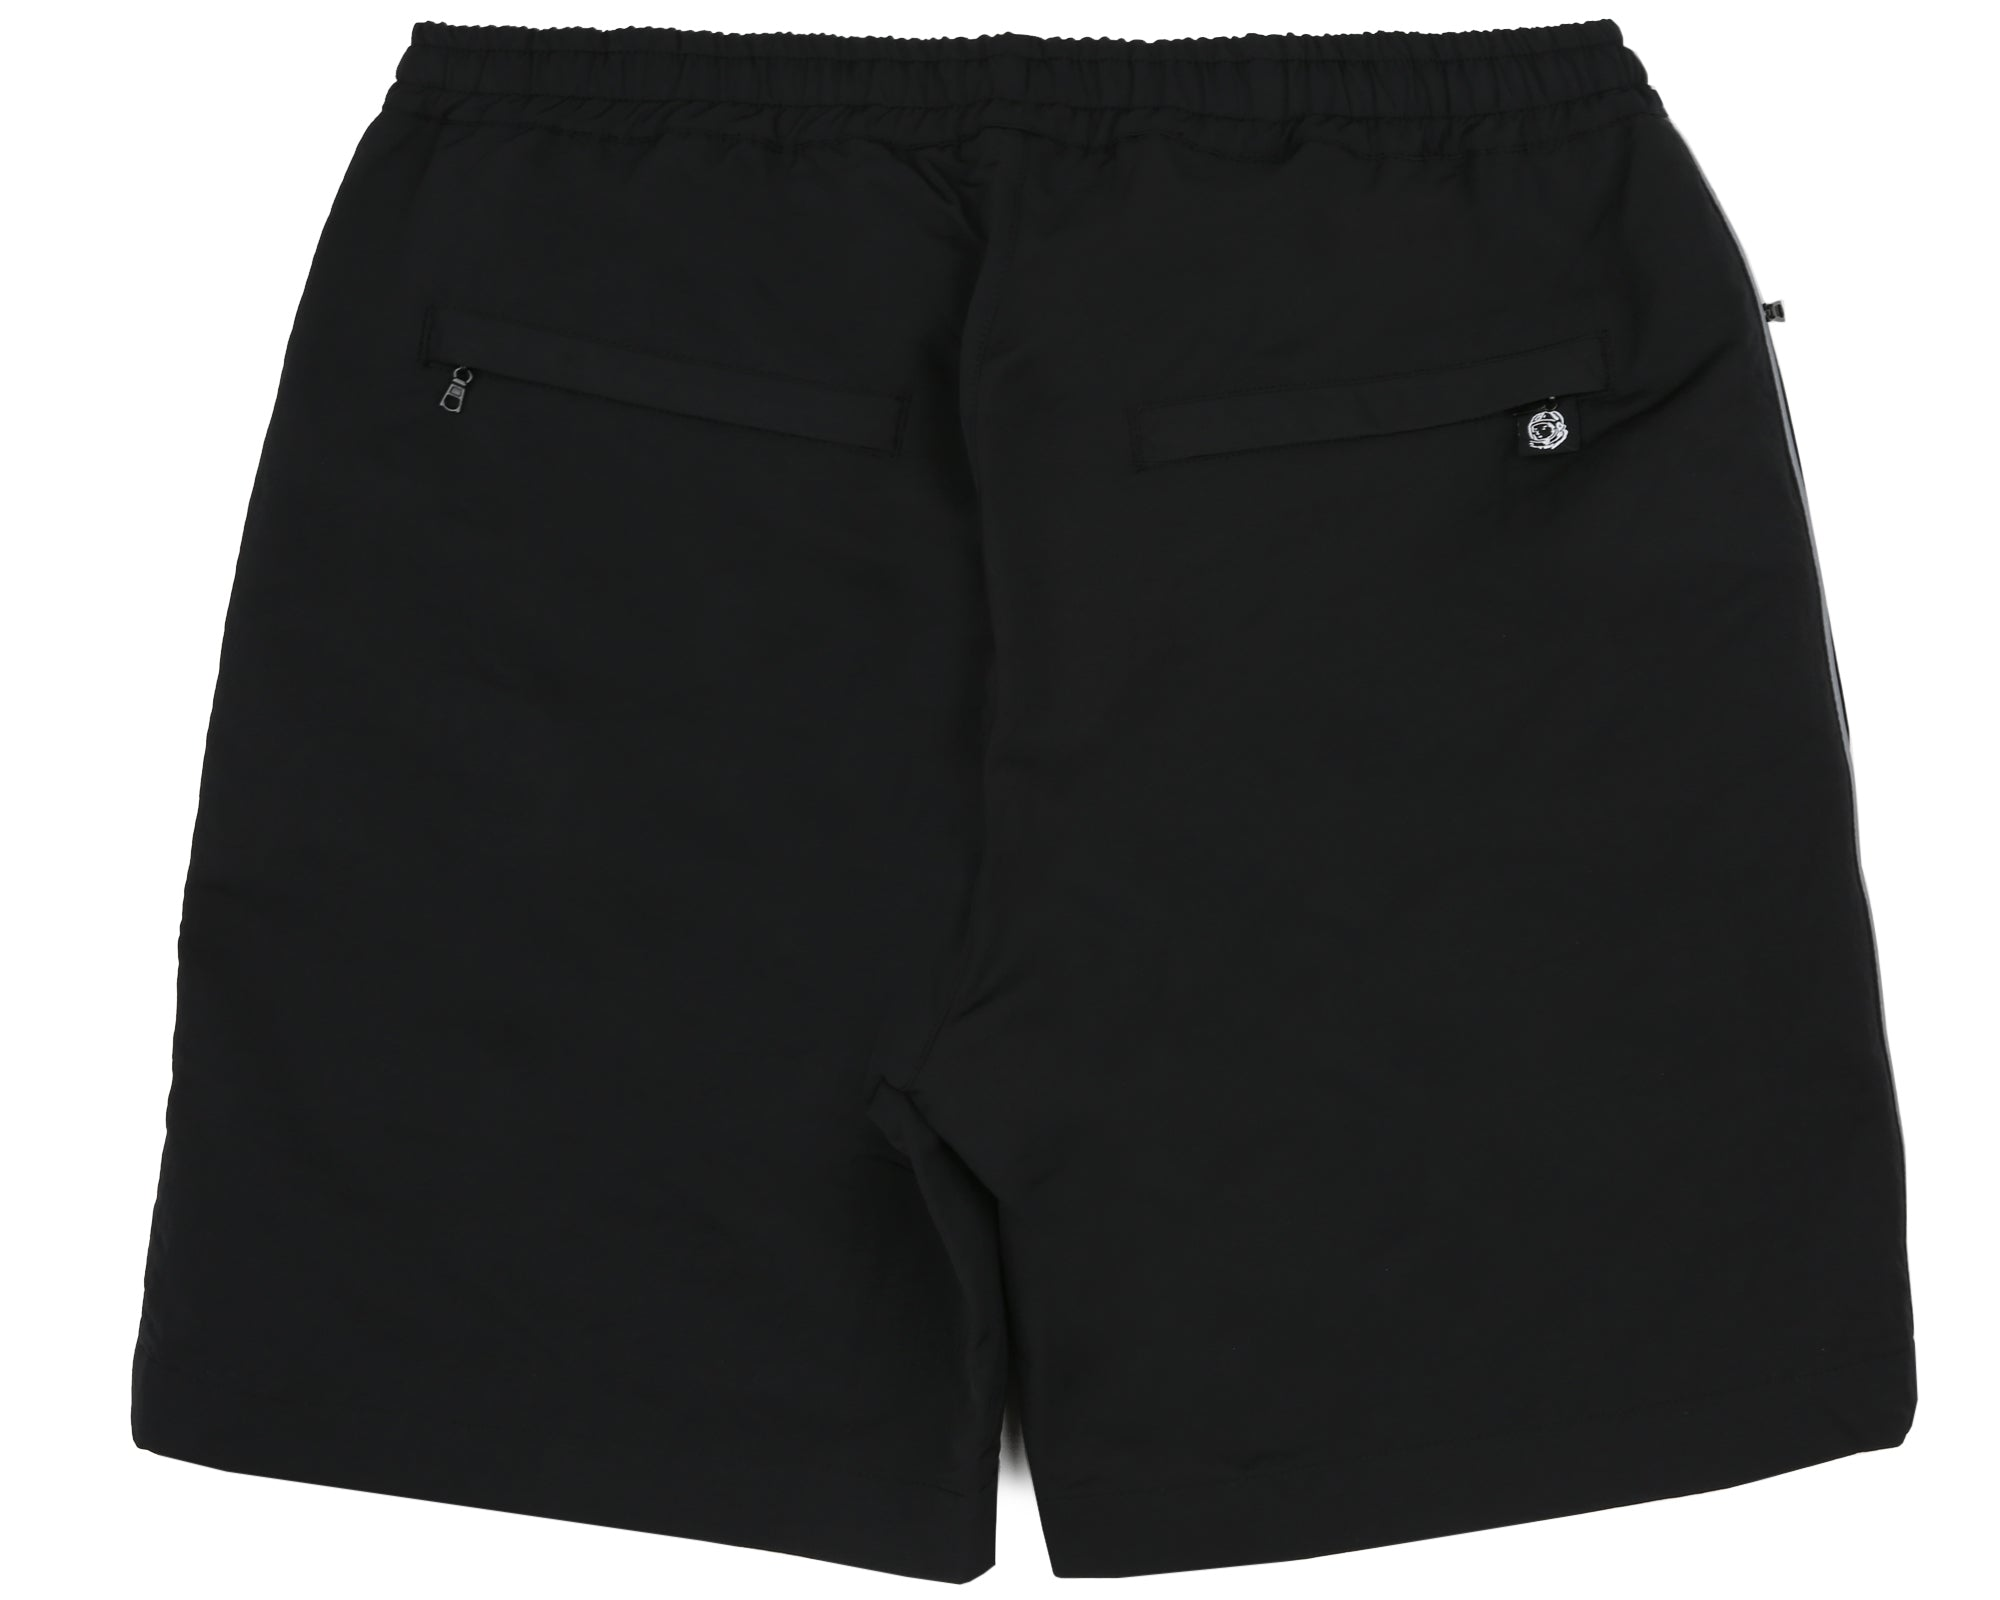 TECHNICAL NYLON SHORT - BLACK